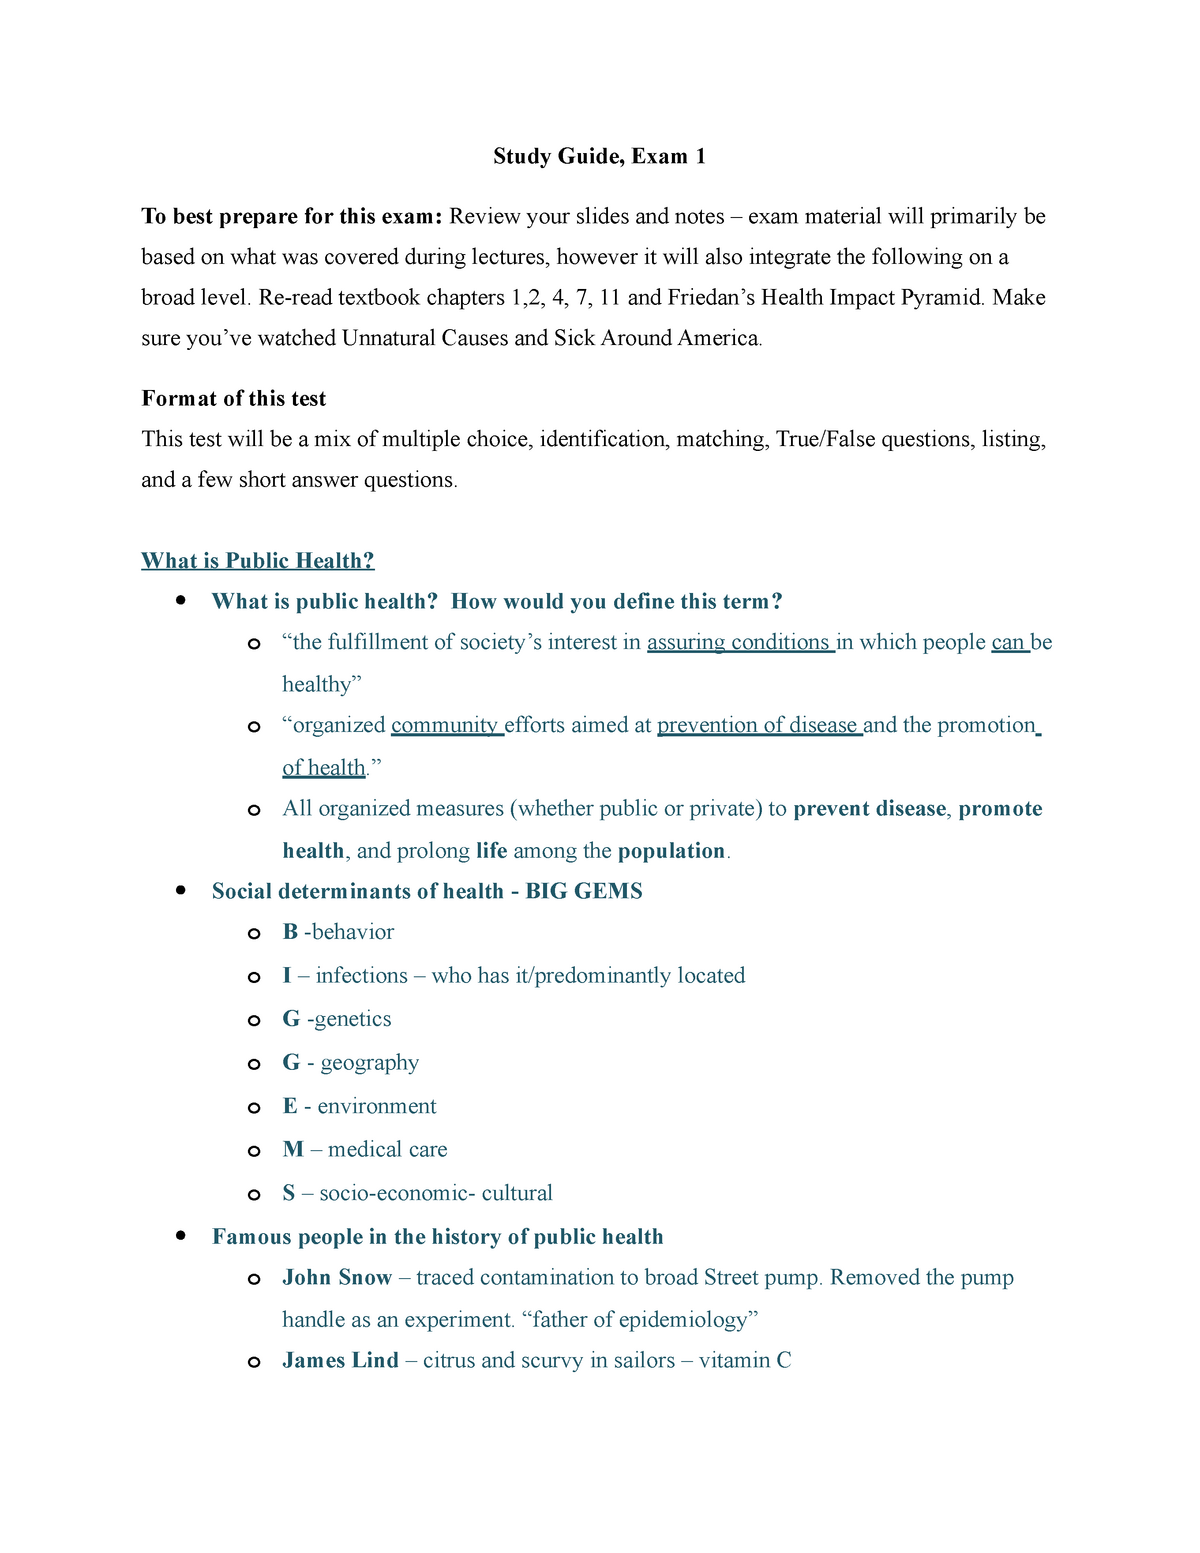 Study Guide Exam 1 - BPH 206 Introduction to Public Health